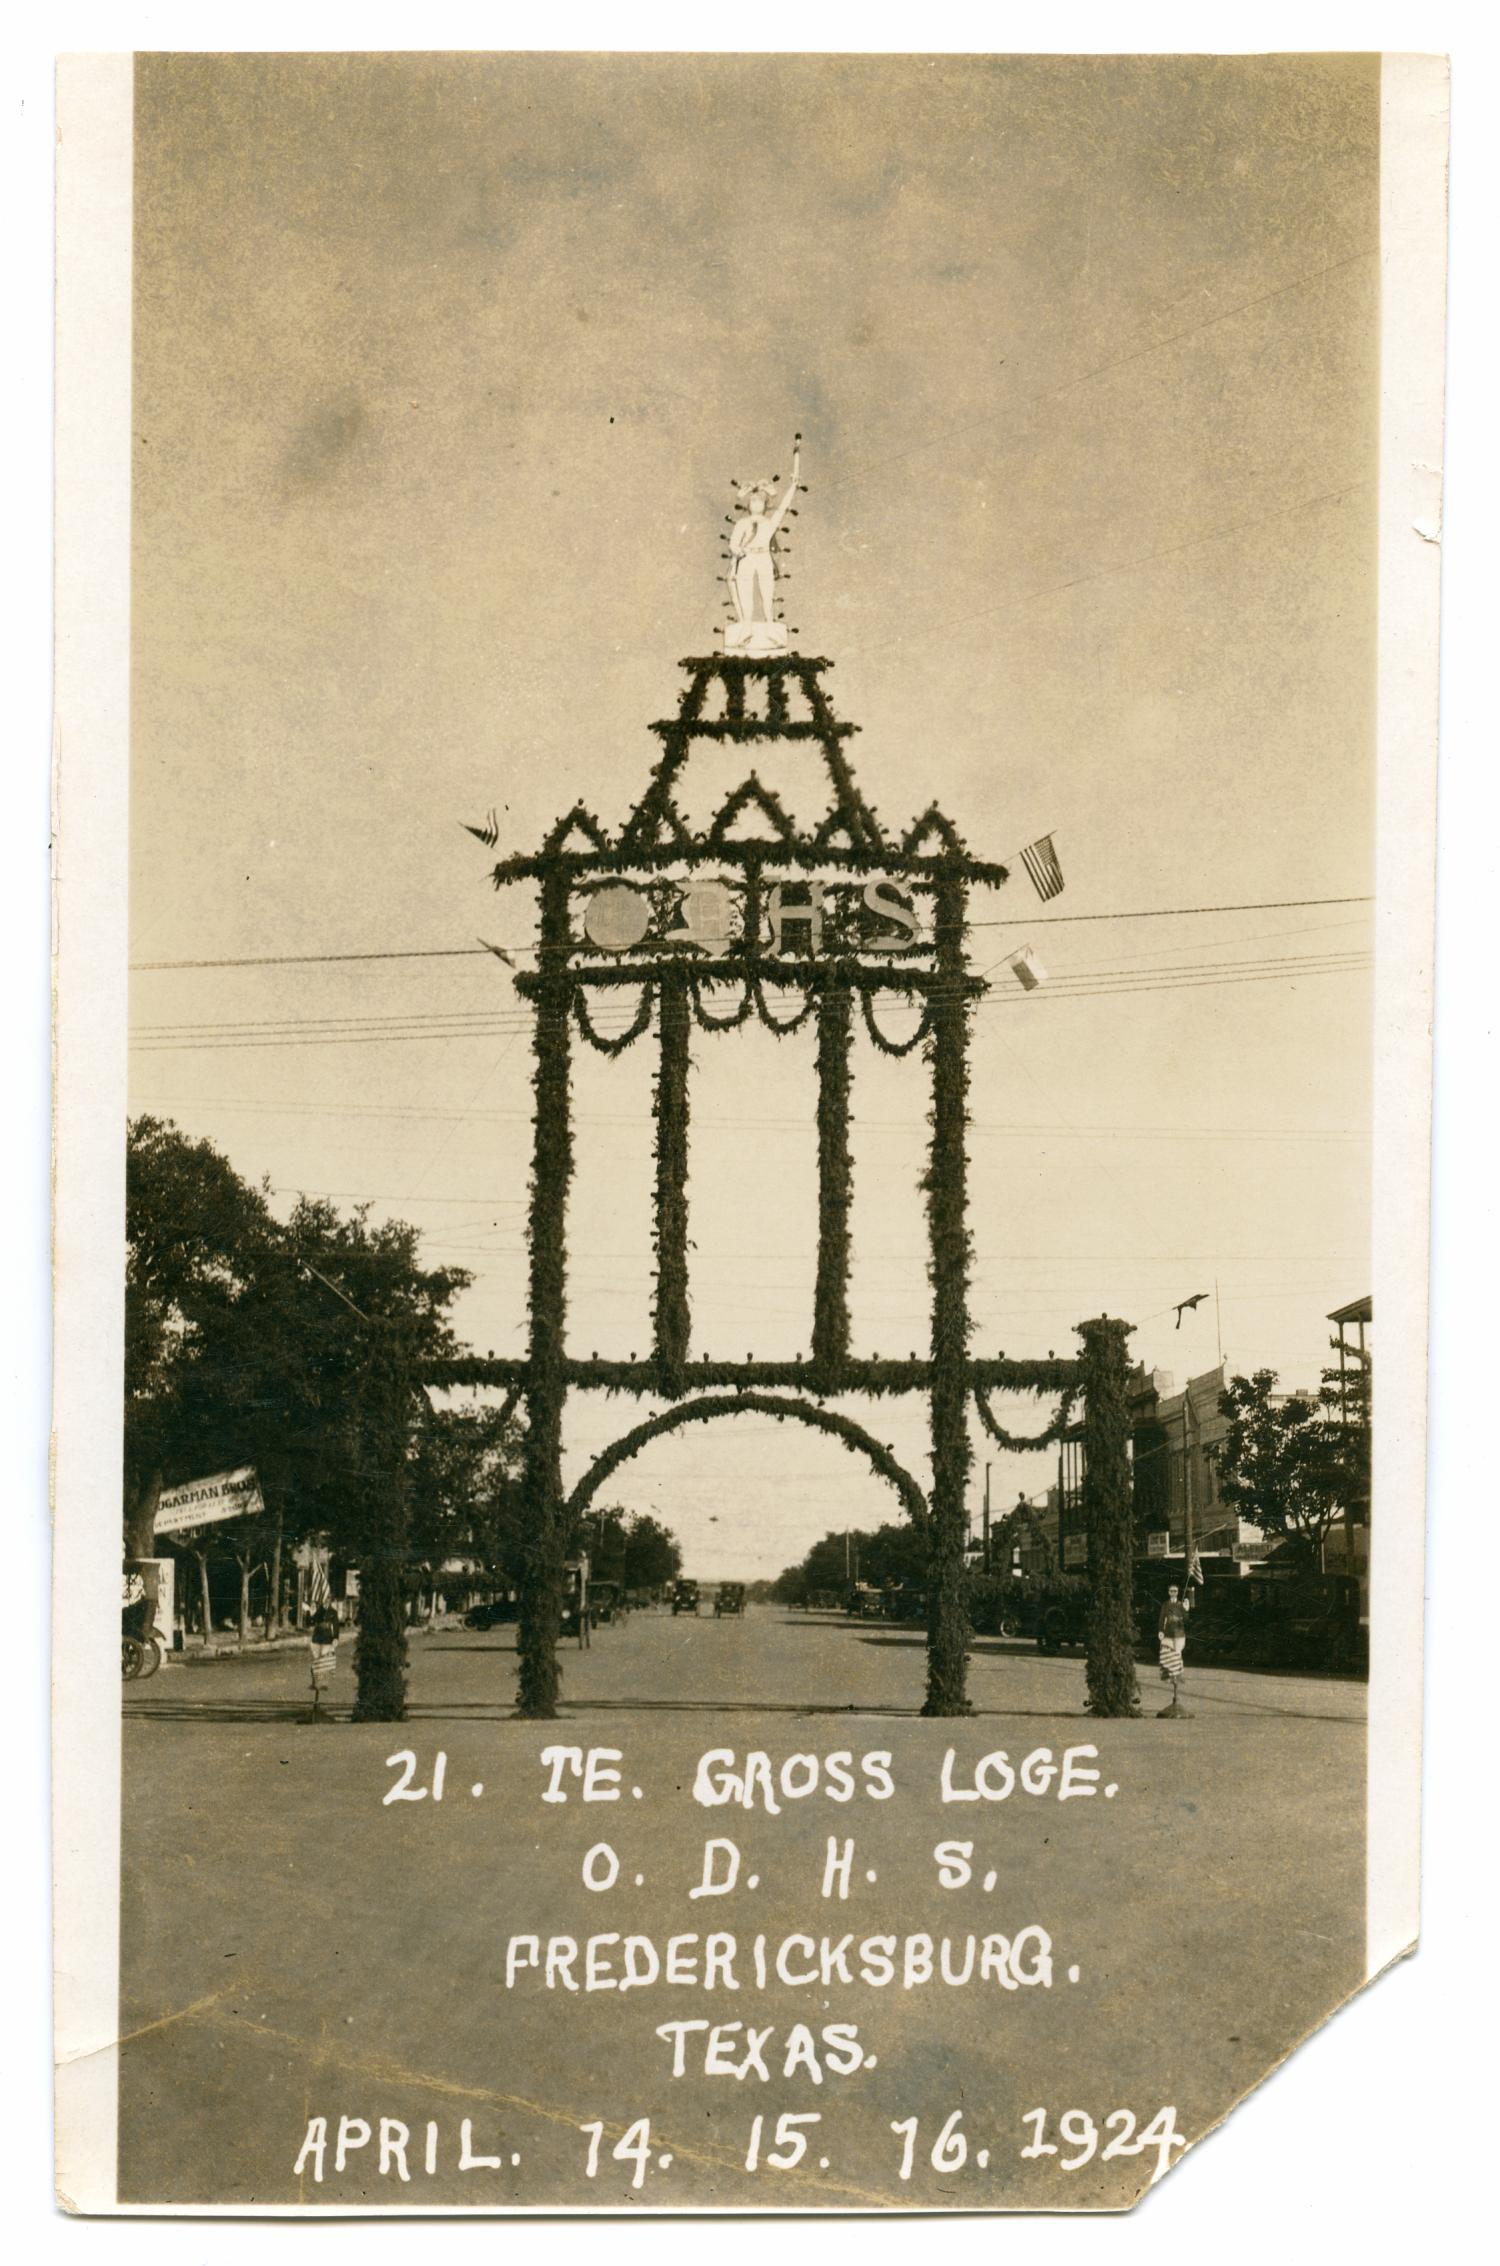 """[Photograph of the O. D. H. S. Archway in Fredericksburg], Photograph of the O. D. H. S. decorative archway in Fredericksburg. The archway has a man on top and the letters O D H S on it, and it is covered in garland and lights. The following is printed in white at the bottom: """"21. TE. Gross Loge. O. D. H. S. Fredericksburg, Texas. April. 14, 15, 16, 1924."""" The following stamp appears on the back: """"Welgehausens Kodak Finishing, Enlarging Fredericksburg, Tex."""","""